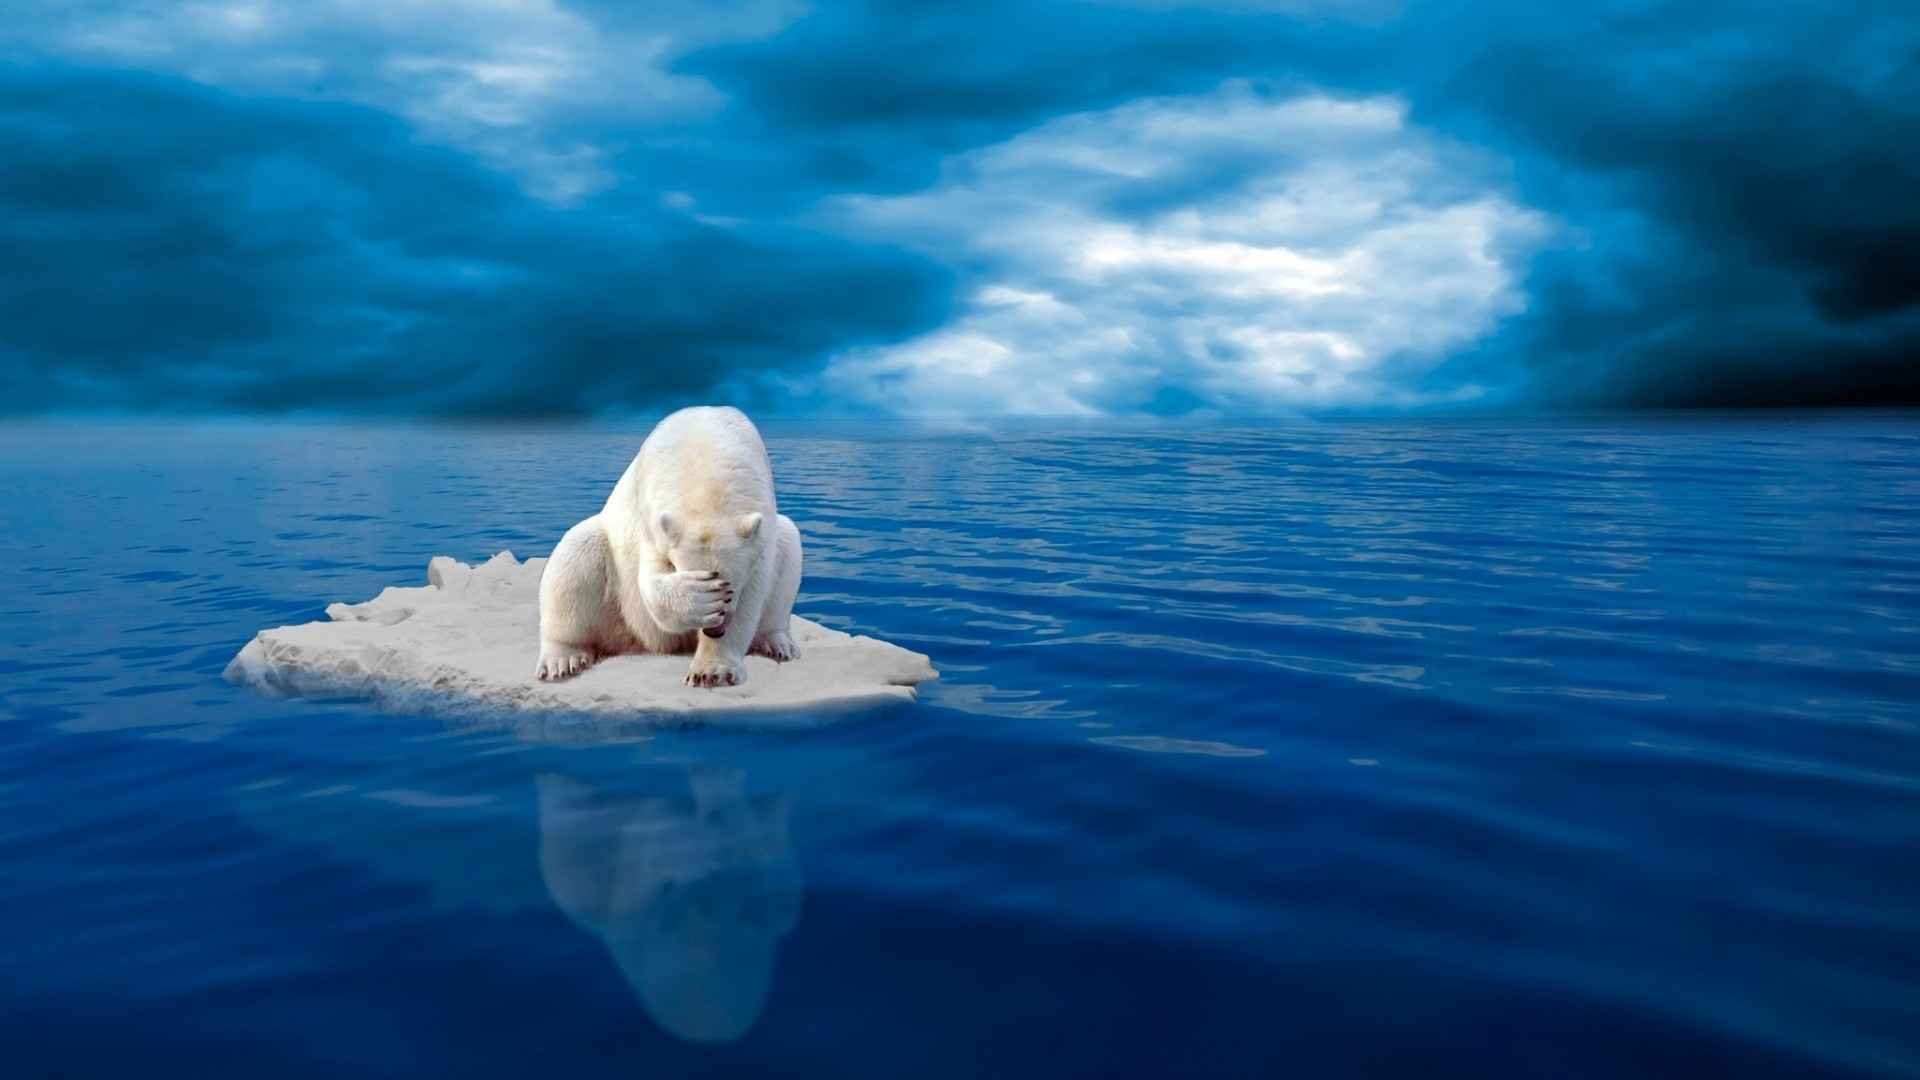 Girls Of The Wilds Wallpaper Sad Polar Bear On Ice In The Middle Of Sea